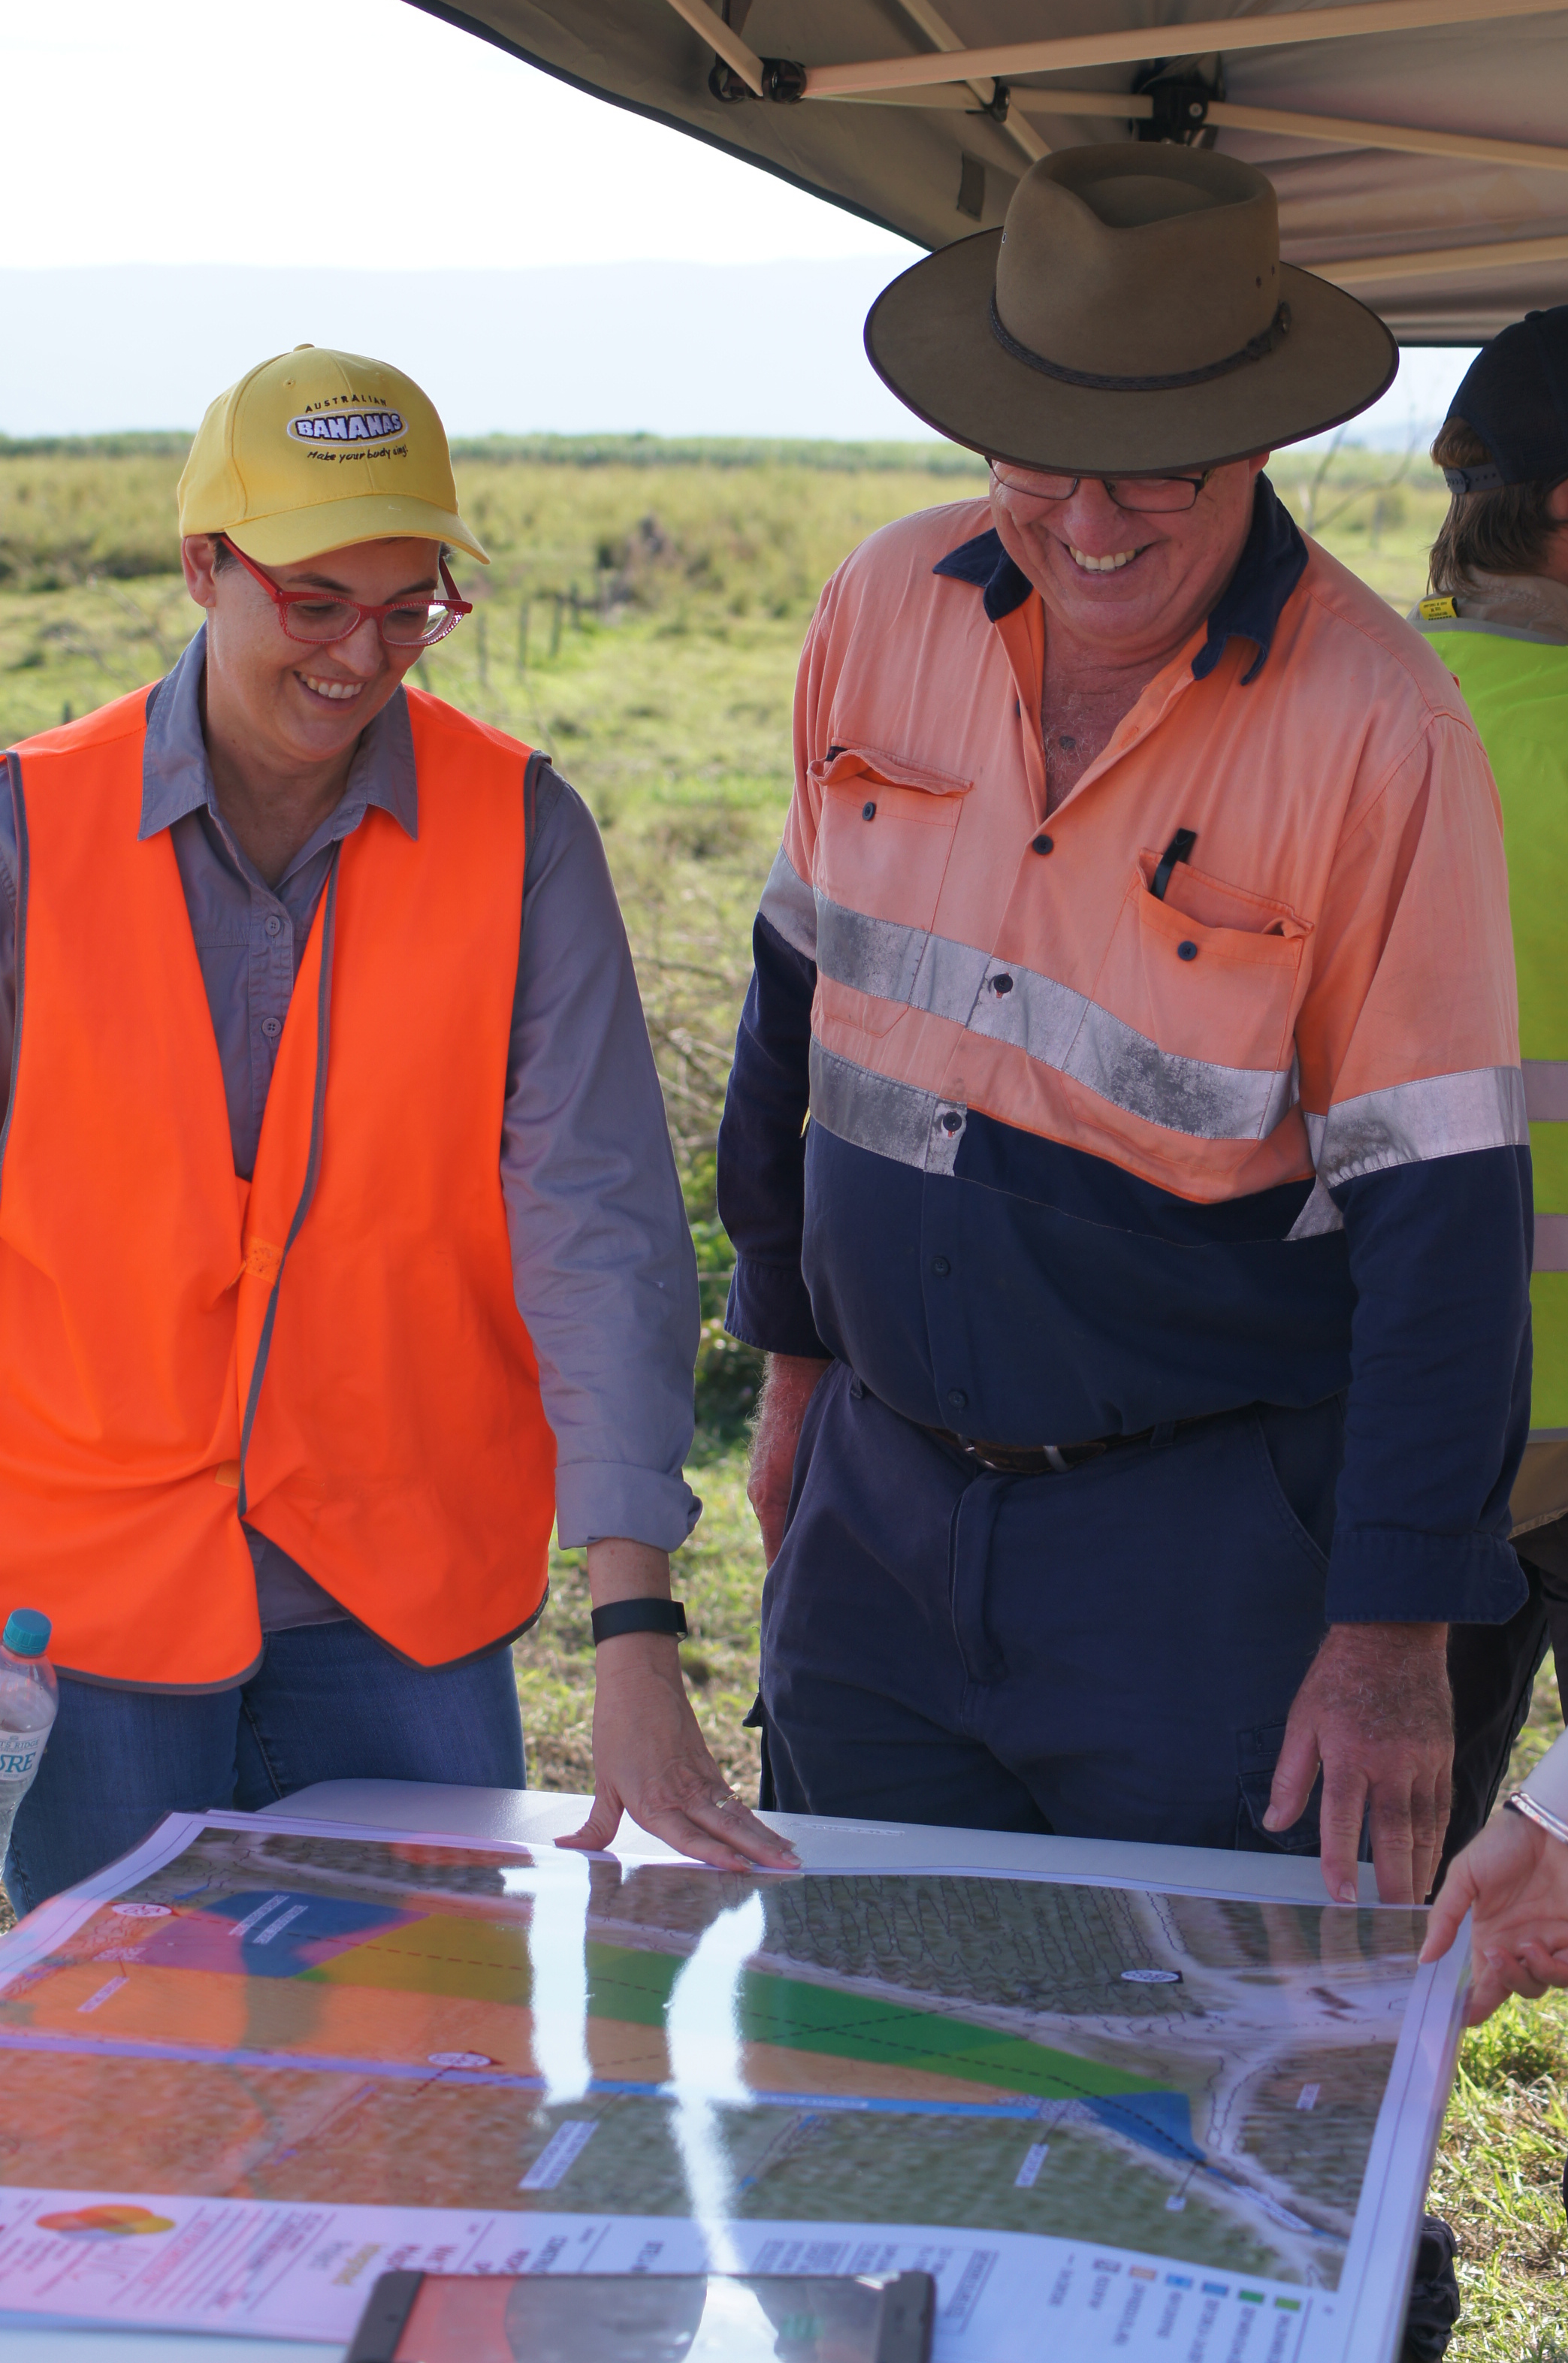 Michelle McKinlay and Robert Mayers look at the draft designs for a treatment system on a banana farm.